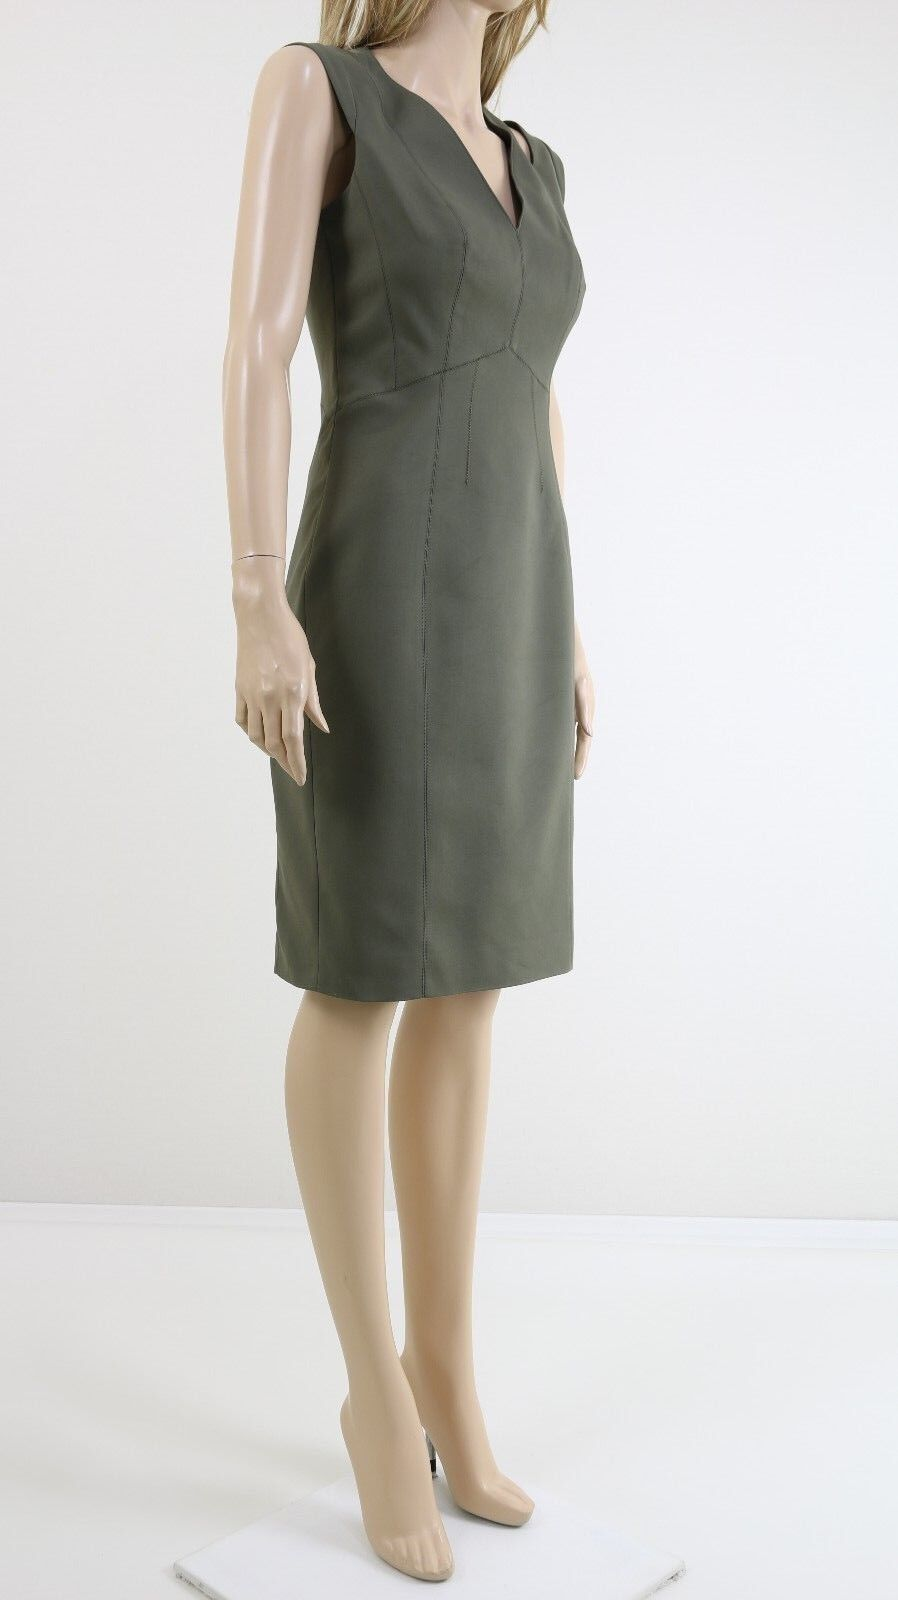 Karen Millen DA200 Woherren Khaki Cut out Pencil Cocktail Party Dress